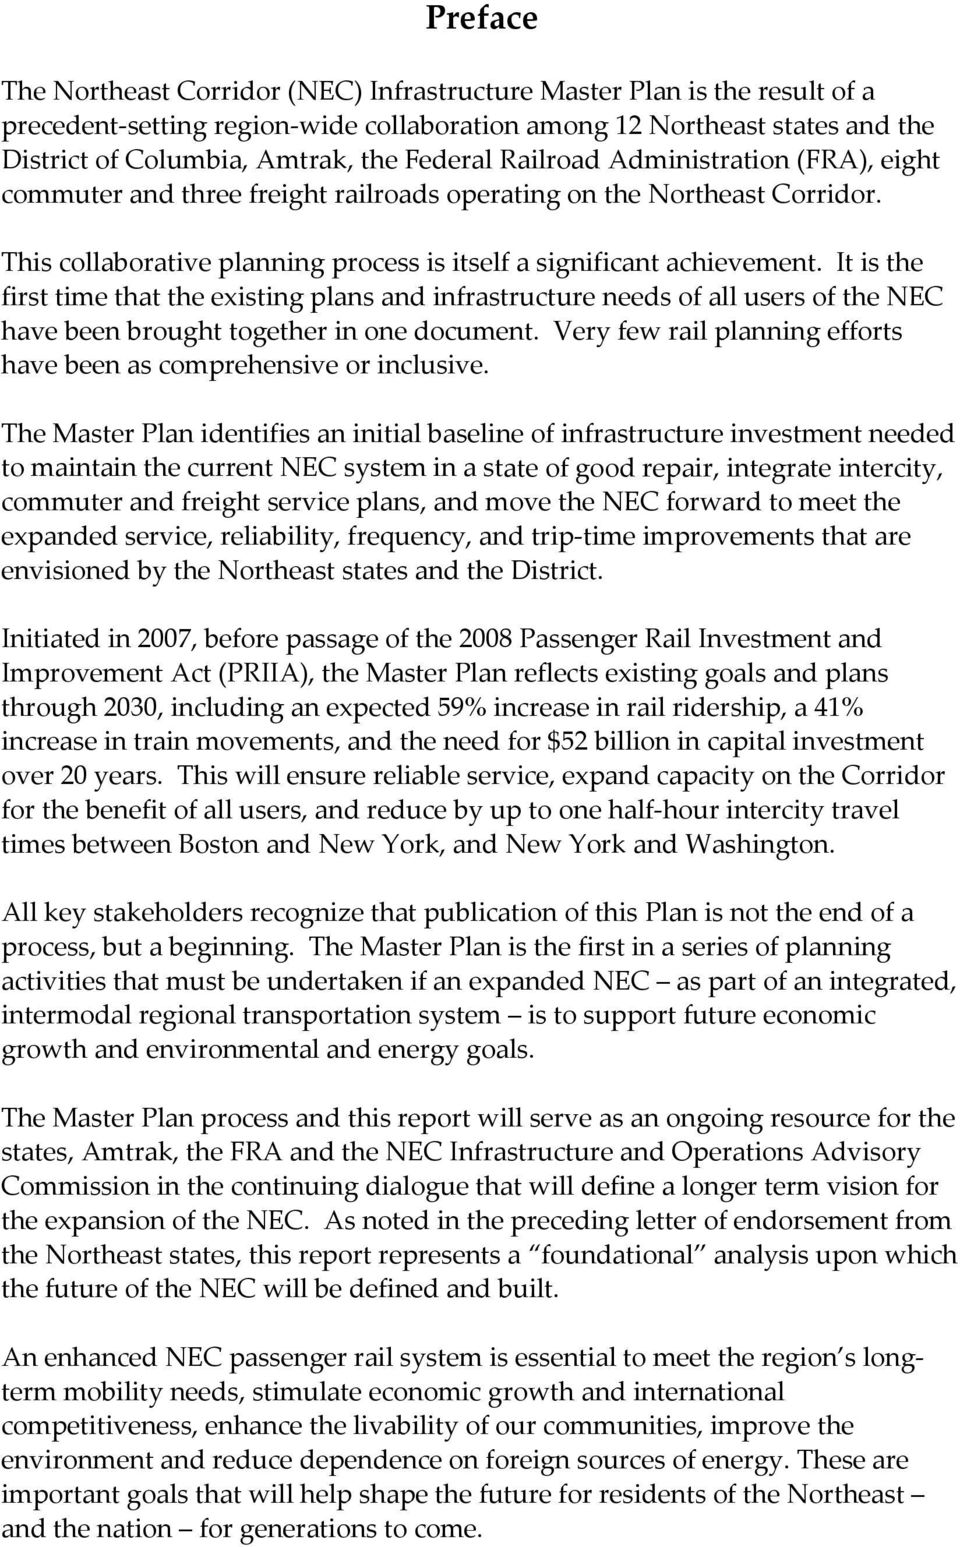 It is the first time that the existing plans and infrastructure needs of all users of the NEC have been brought together in one document.